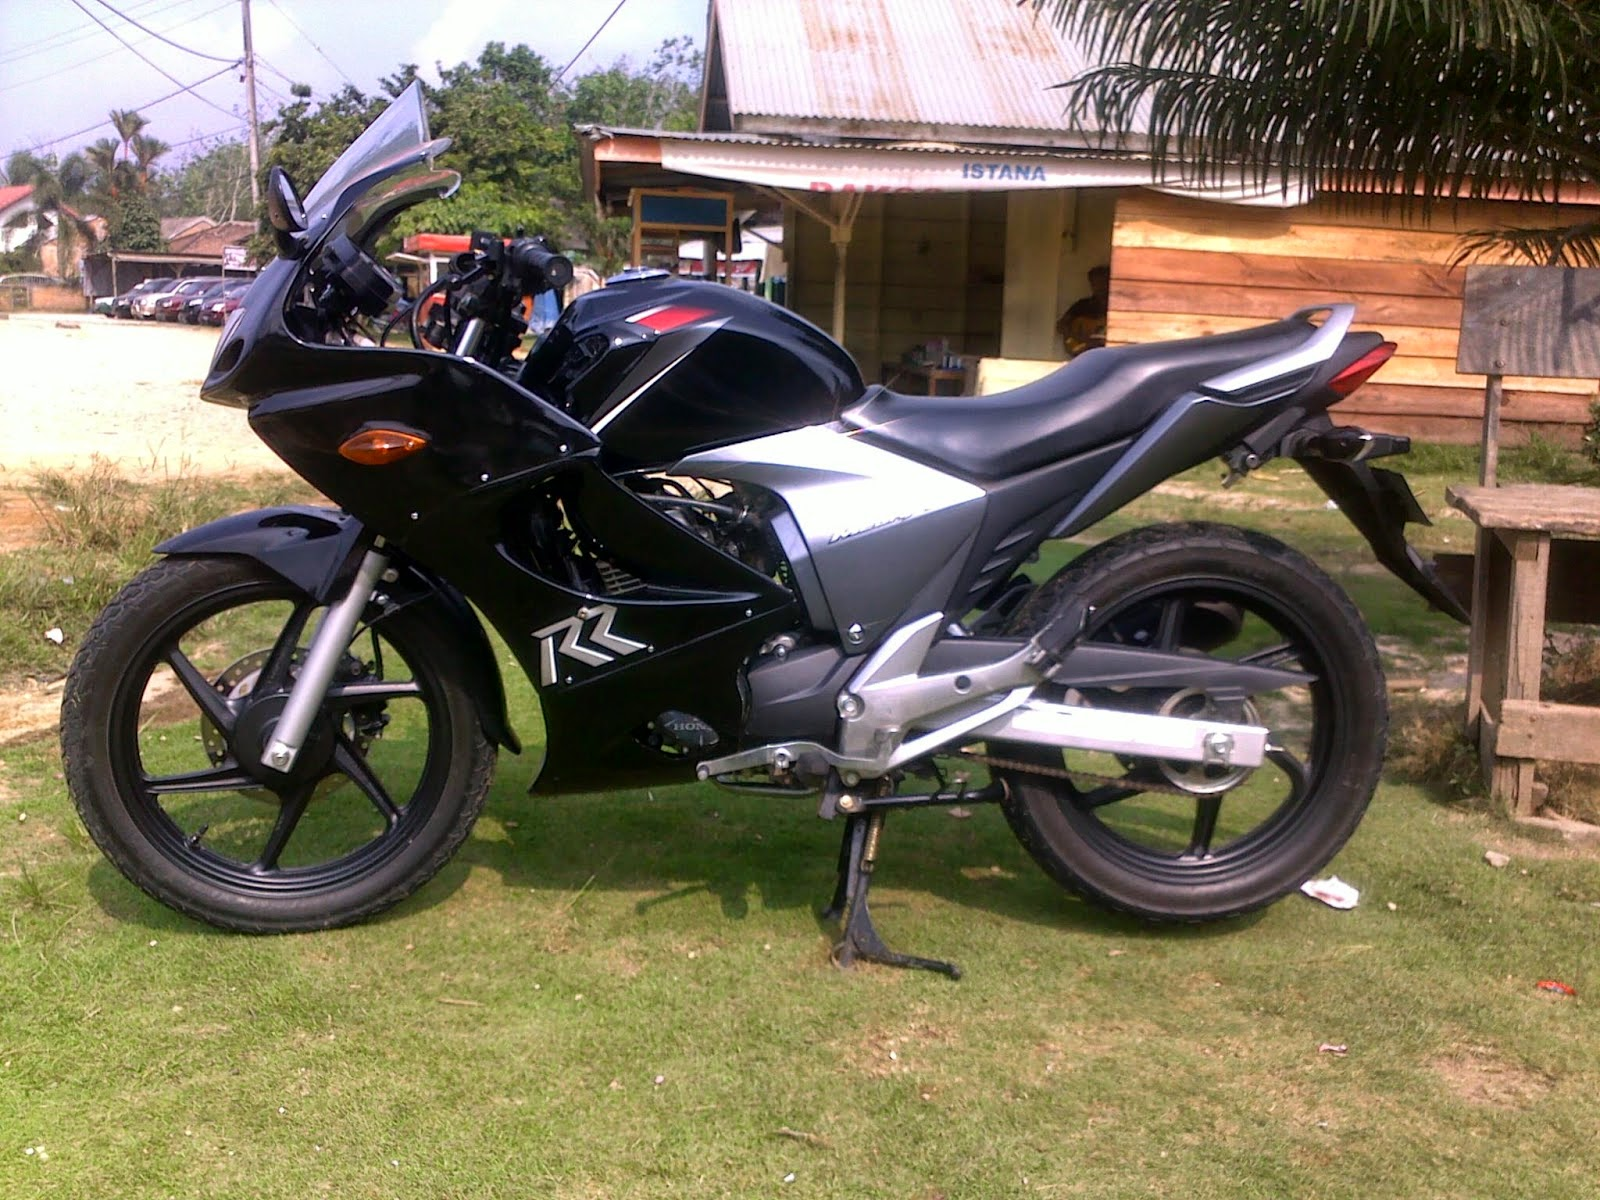 Modifikasi New Megapro Ala Touring